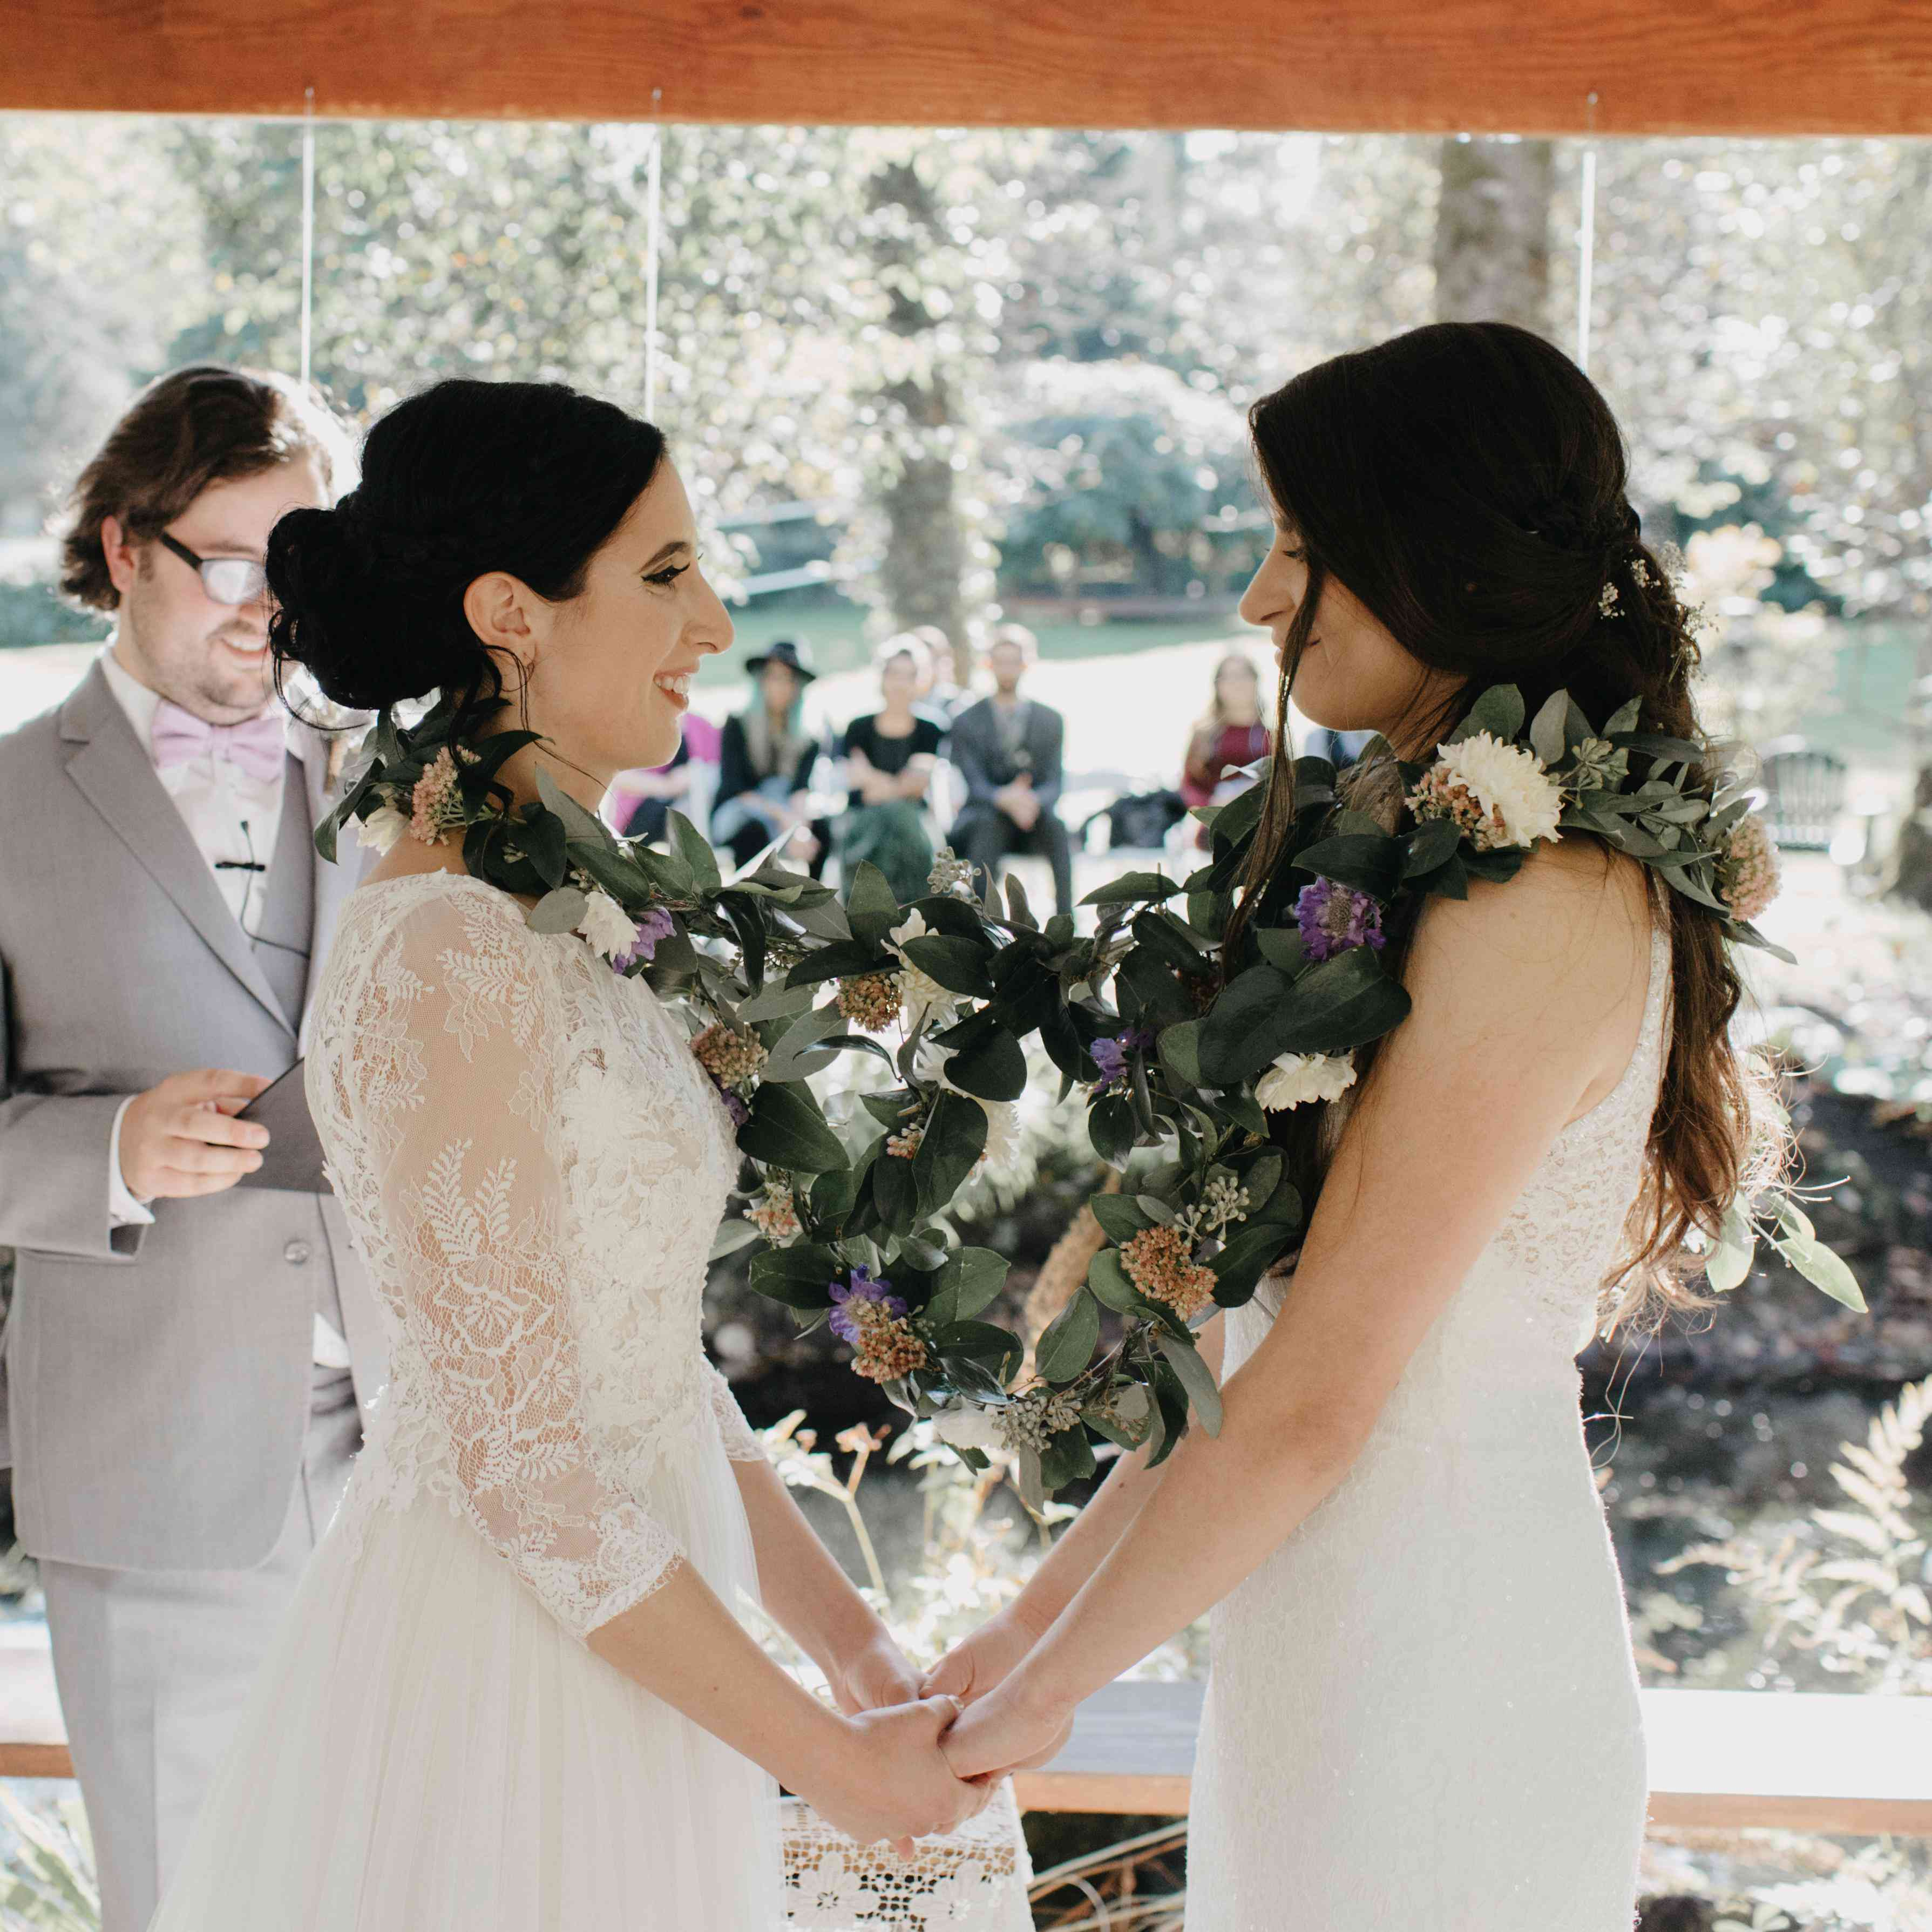 12 Creative Unity Ceremony Ideas For Your Wedding